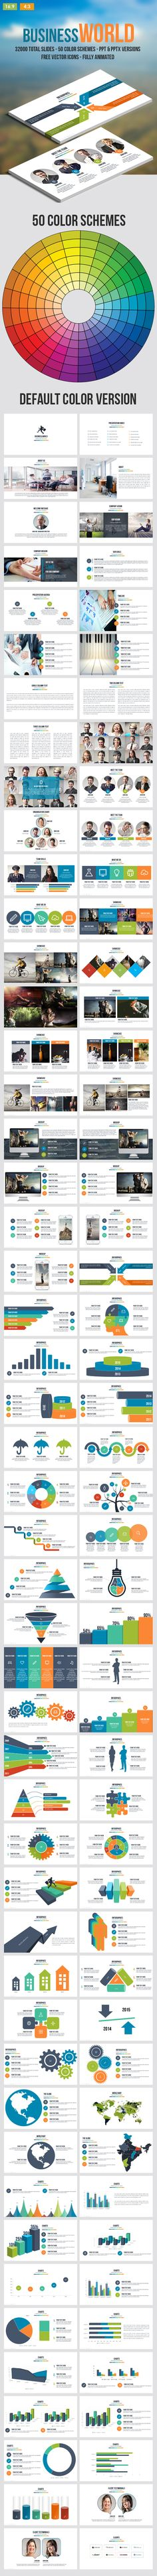 Business World  Multipurpose Powerpoint Template — Powerpoint PPT #PPT Template #medicine • Download ➝ https://graphicriver.net/item/business-world-multipurpose-powerpoint-template/18861162?ref=pxcr